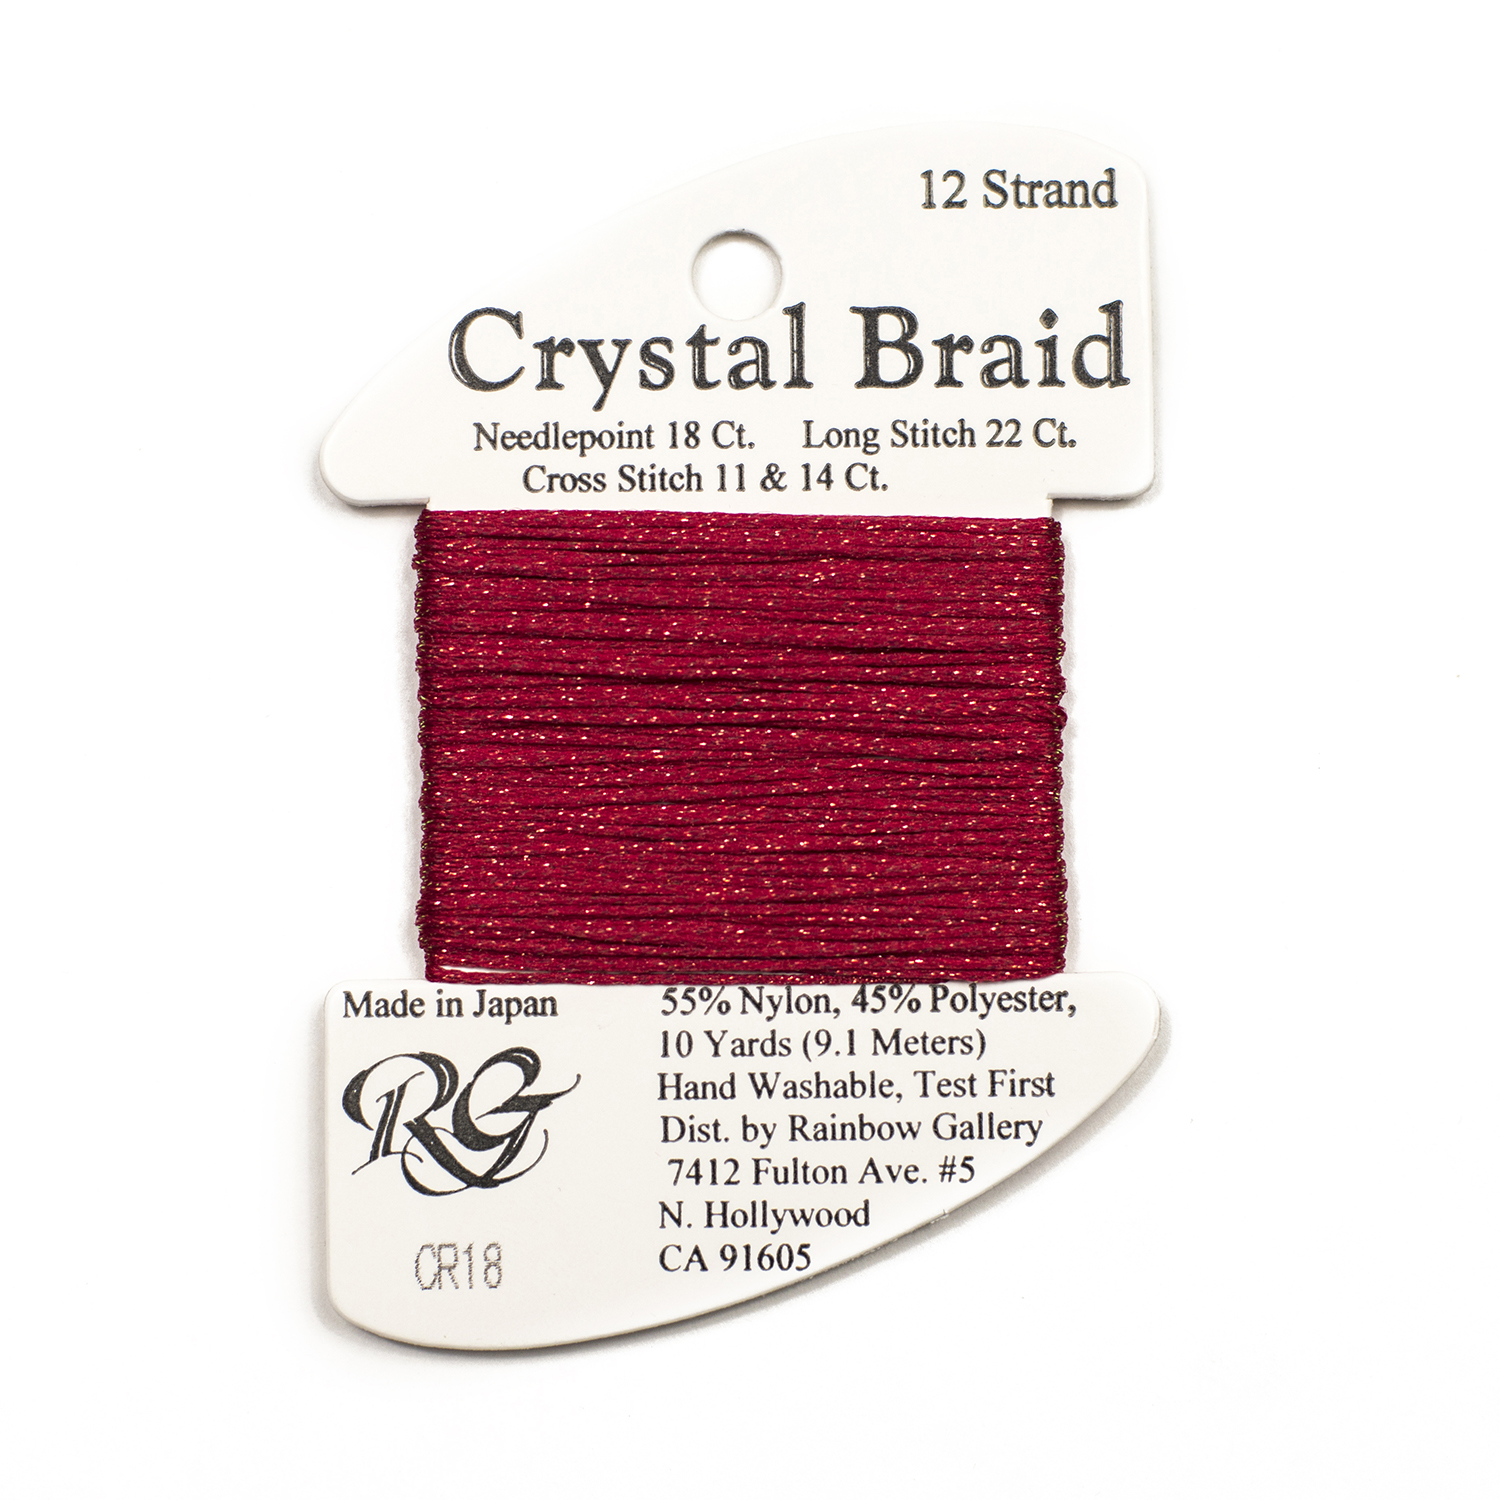 Nashville Needleworks - Crystal Braid